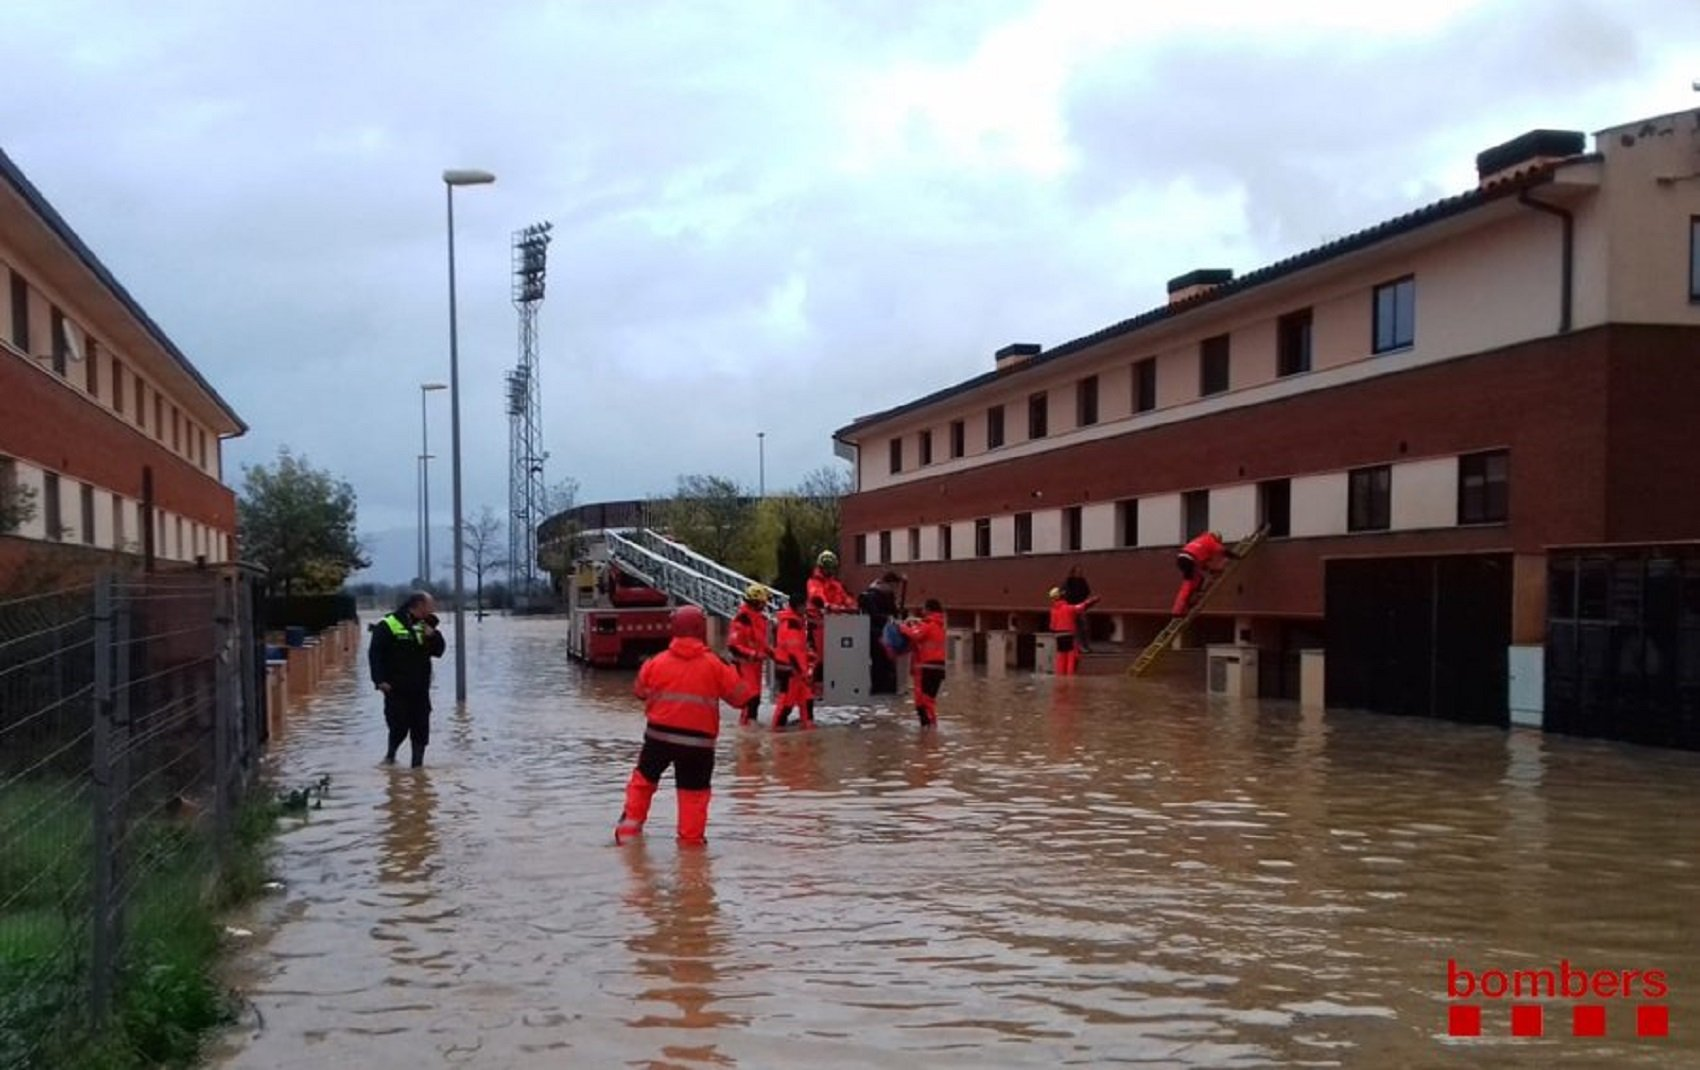 bombers figueres inundacions @bomberscat